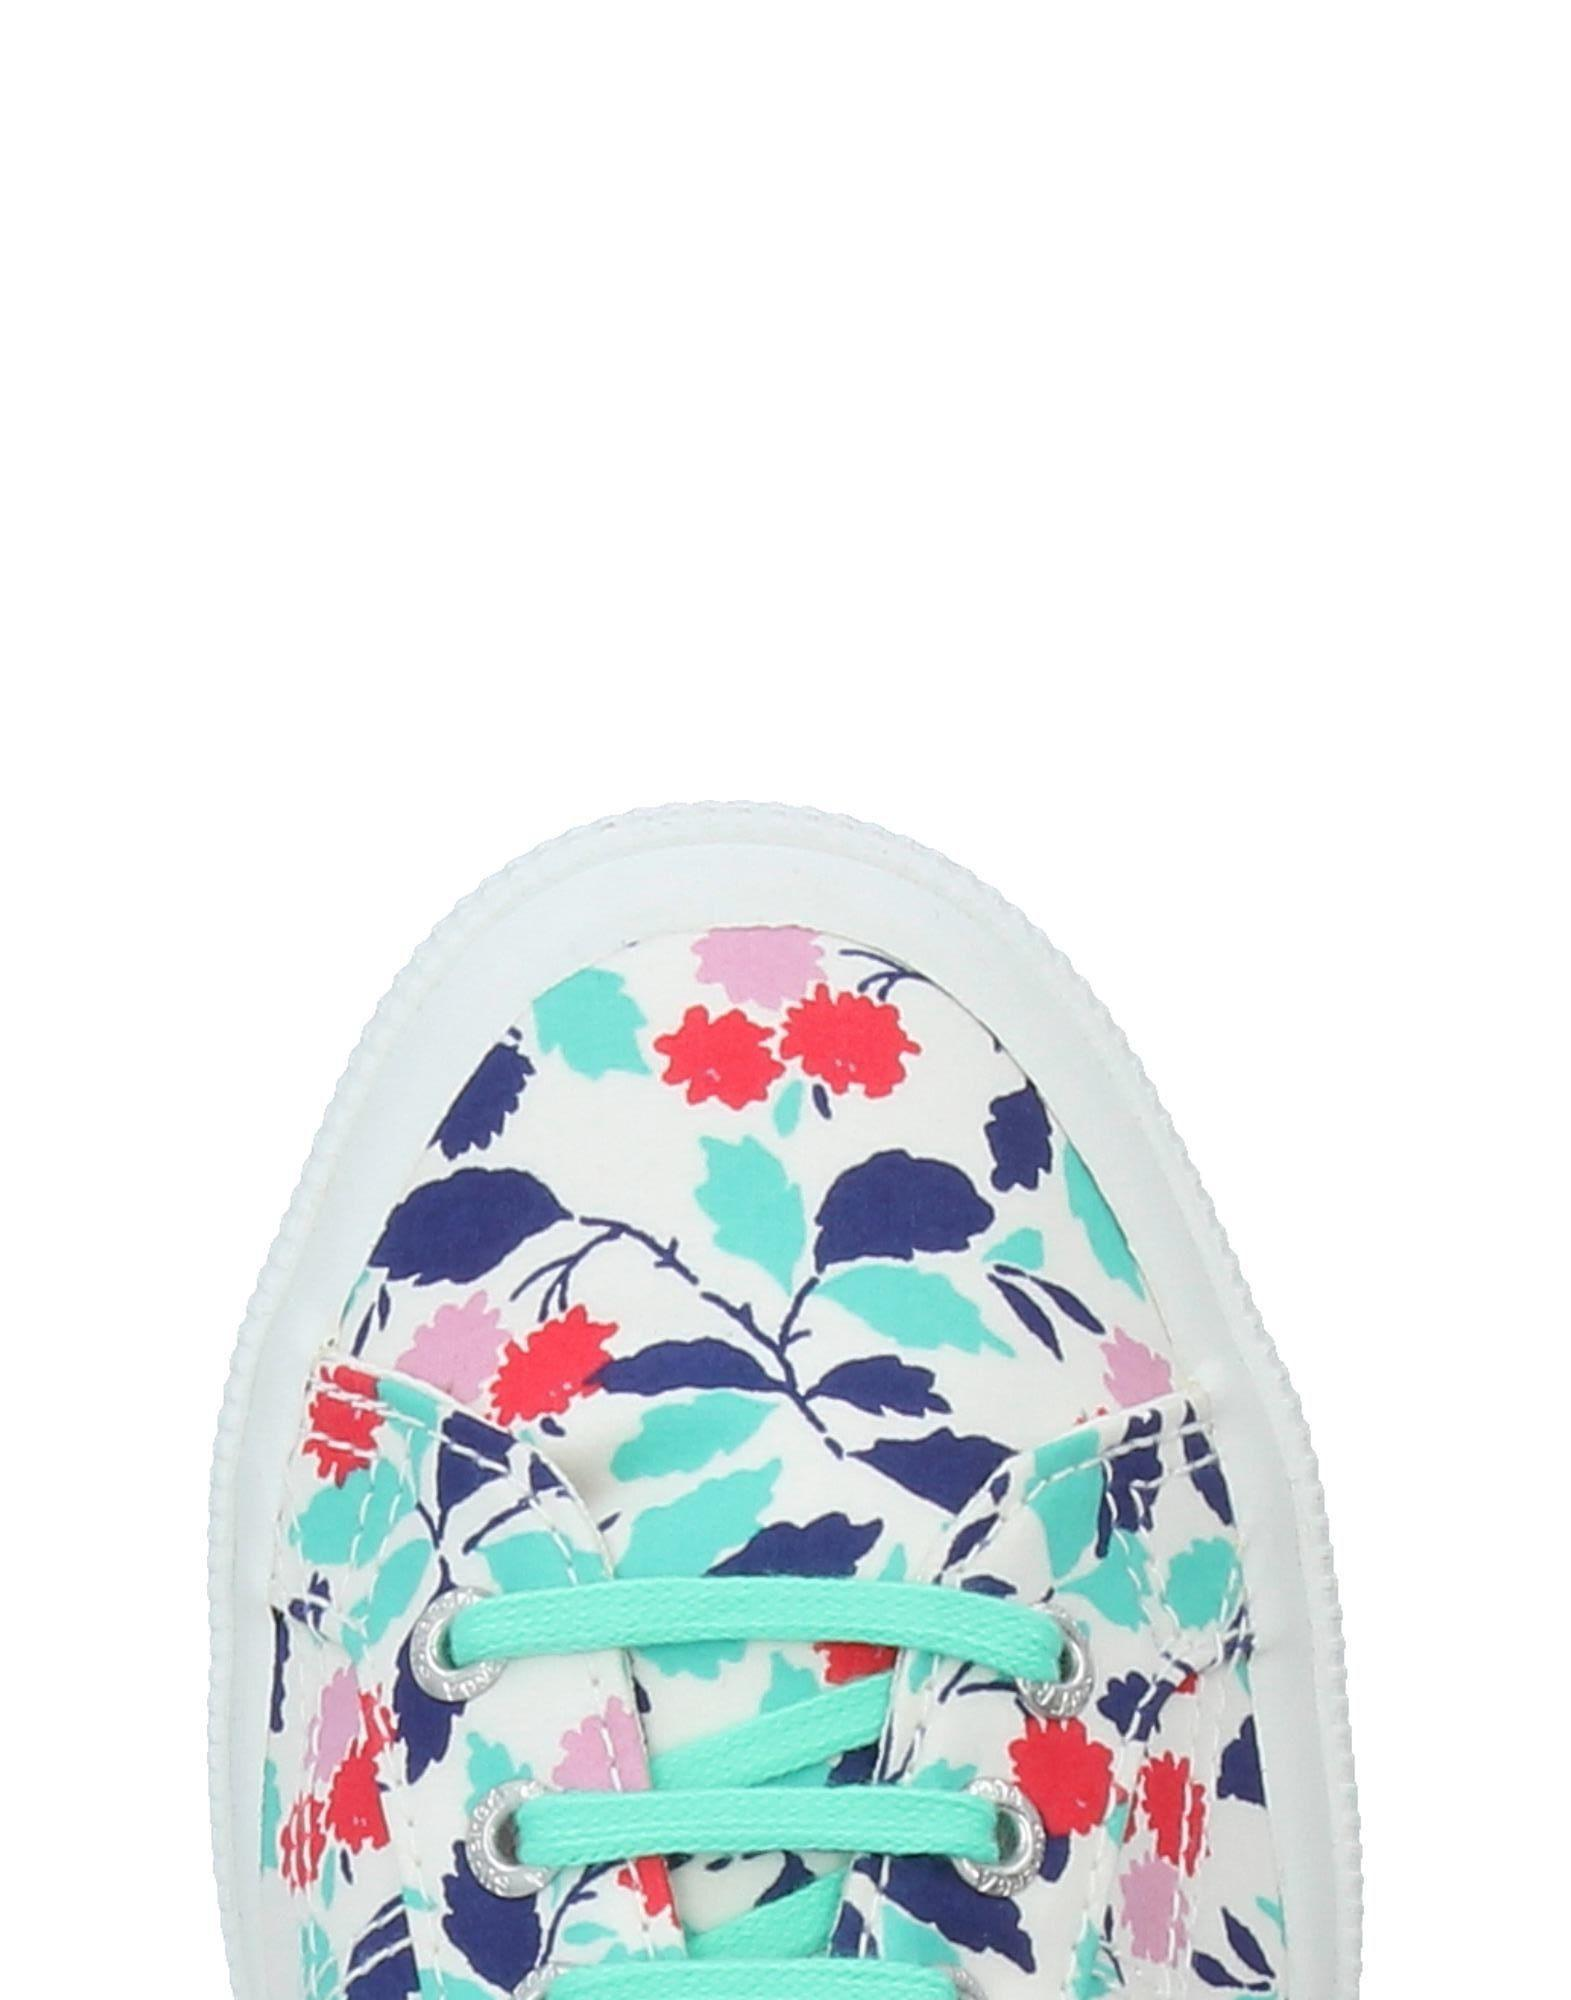 Superga Low-tops & Sneakers in Turquoise (Blue)